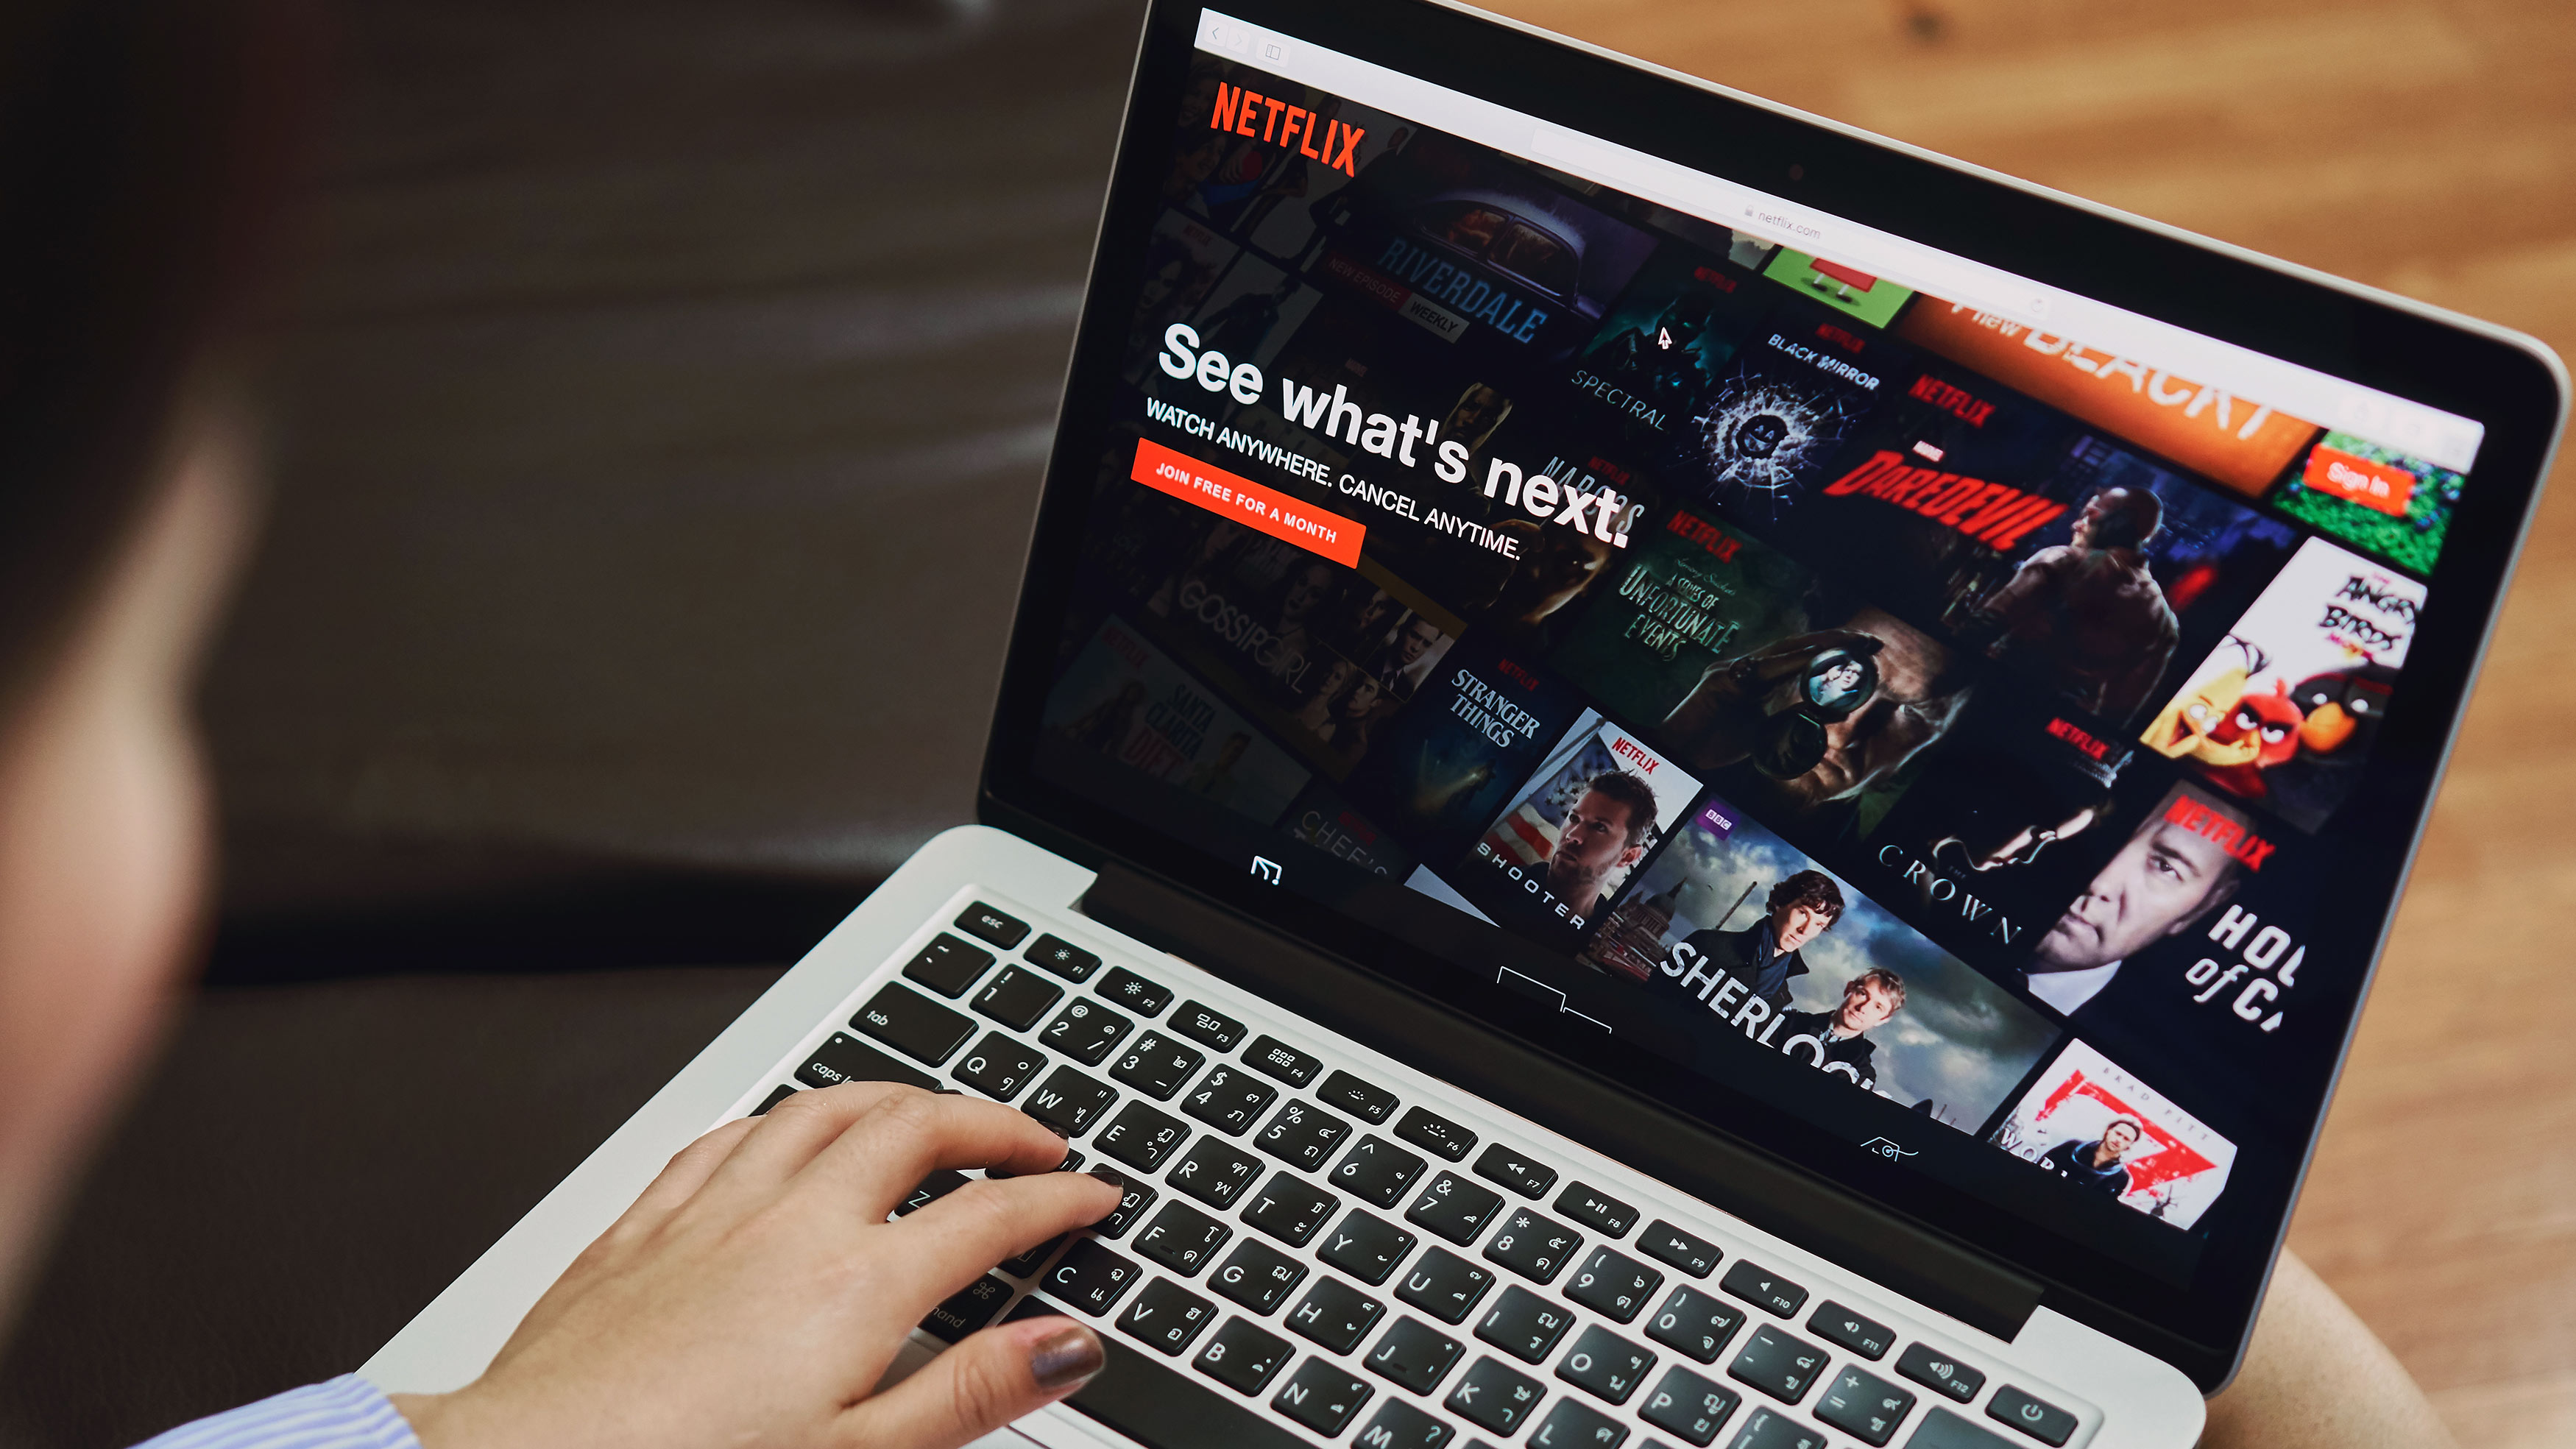 LEARNING LANGUAGES WITH NETFLIX, THE CHROME EXTENSION TO HELP YOU